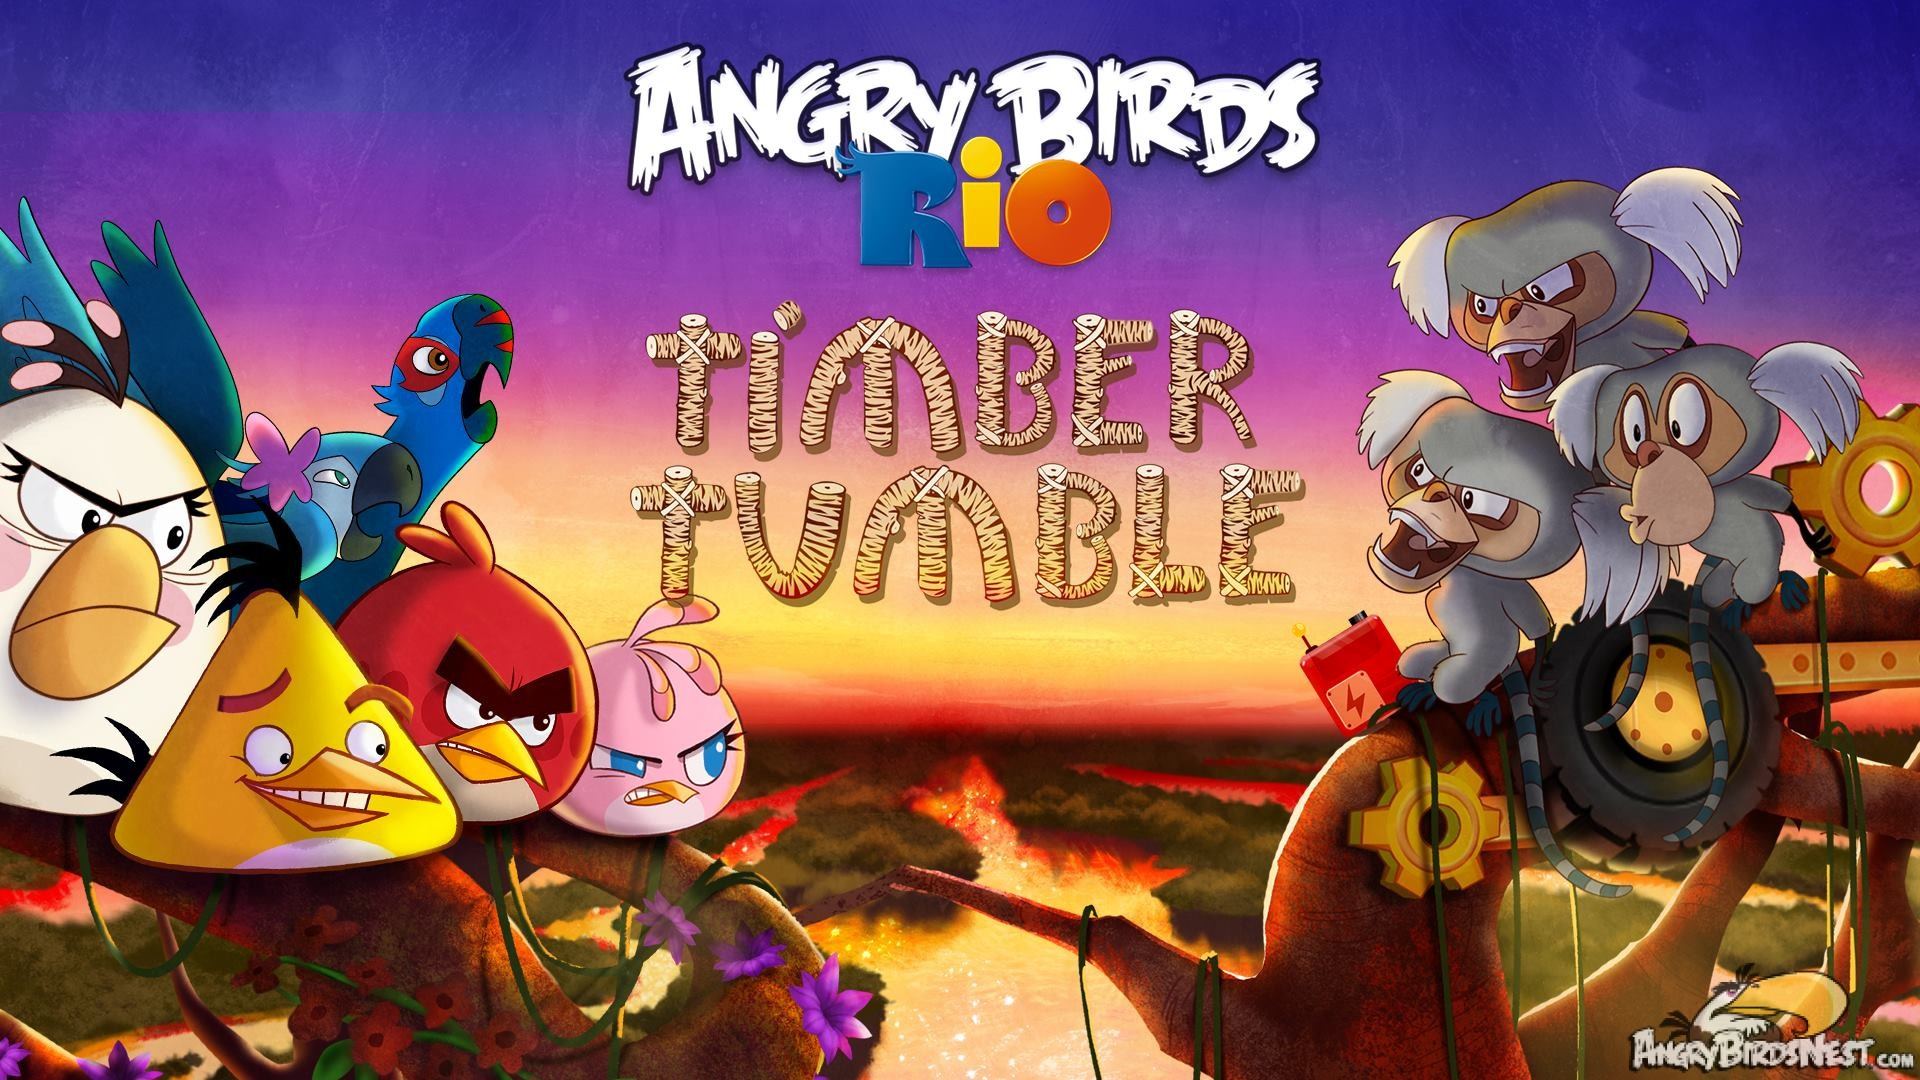 angry birds rio timber tumble now available plus a secret episode hidden harbor updated for. Black Bedroom Furniture Sets. Home Design Ideas